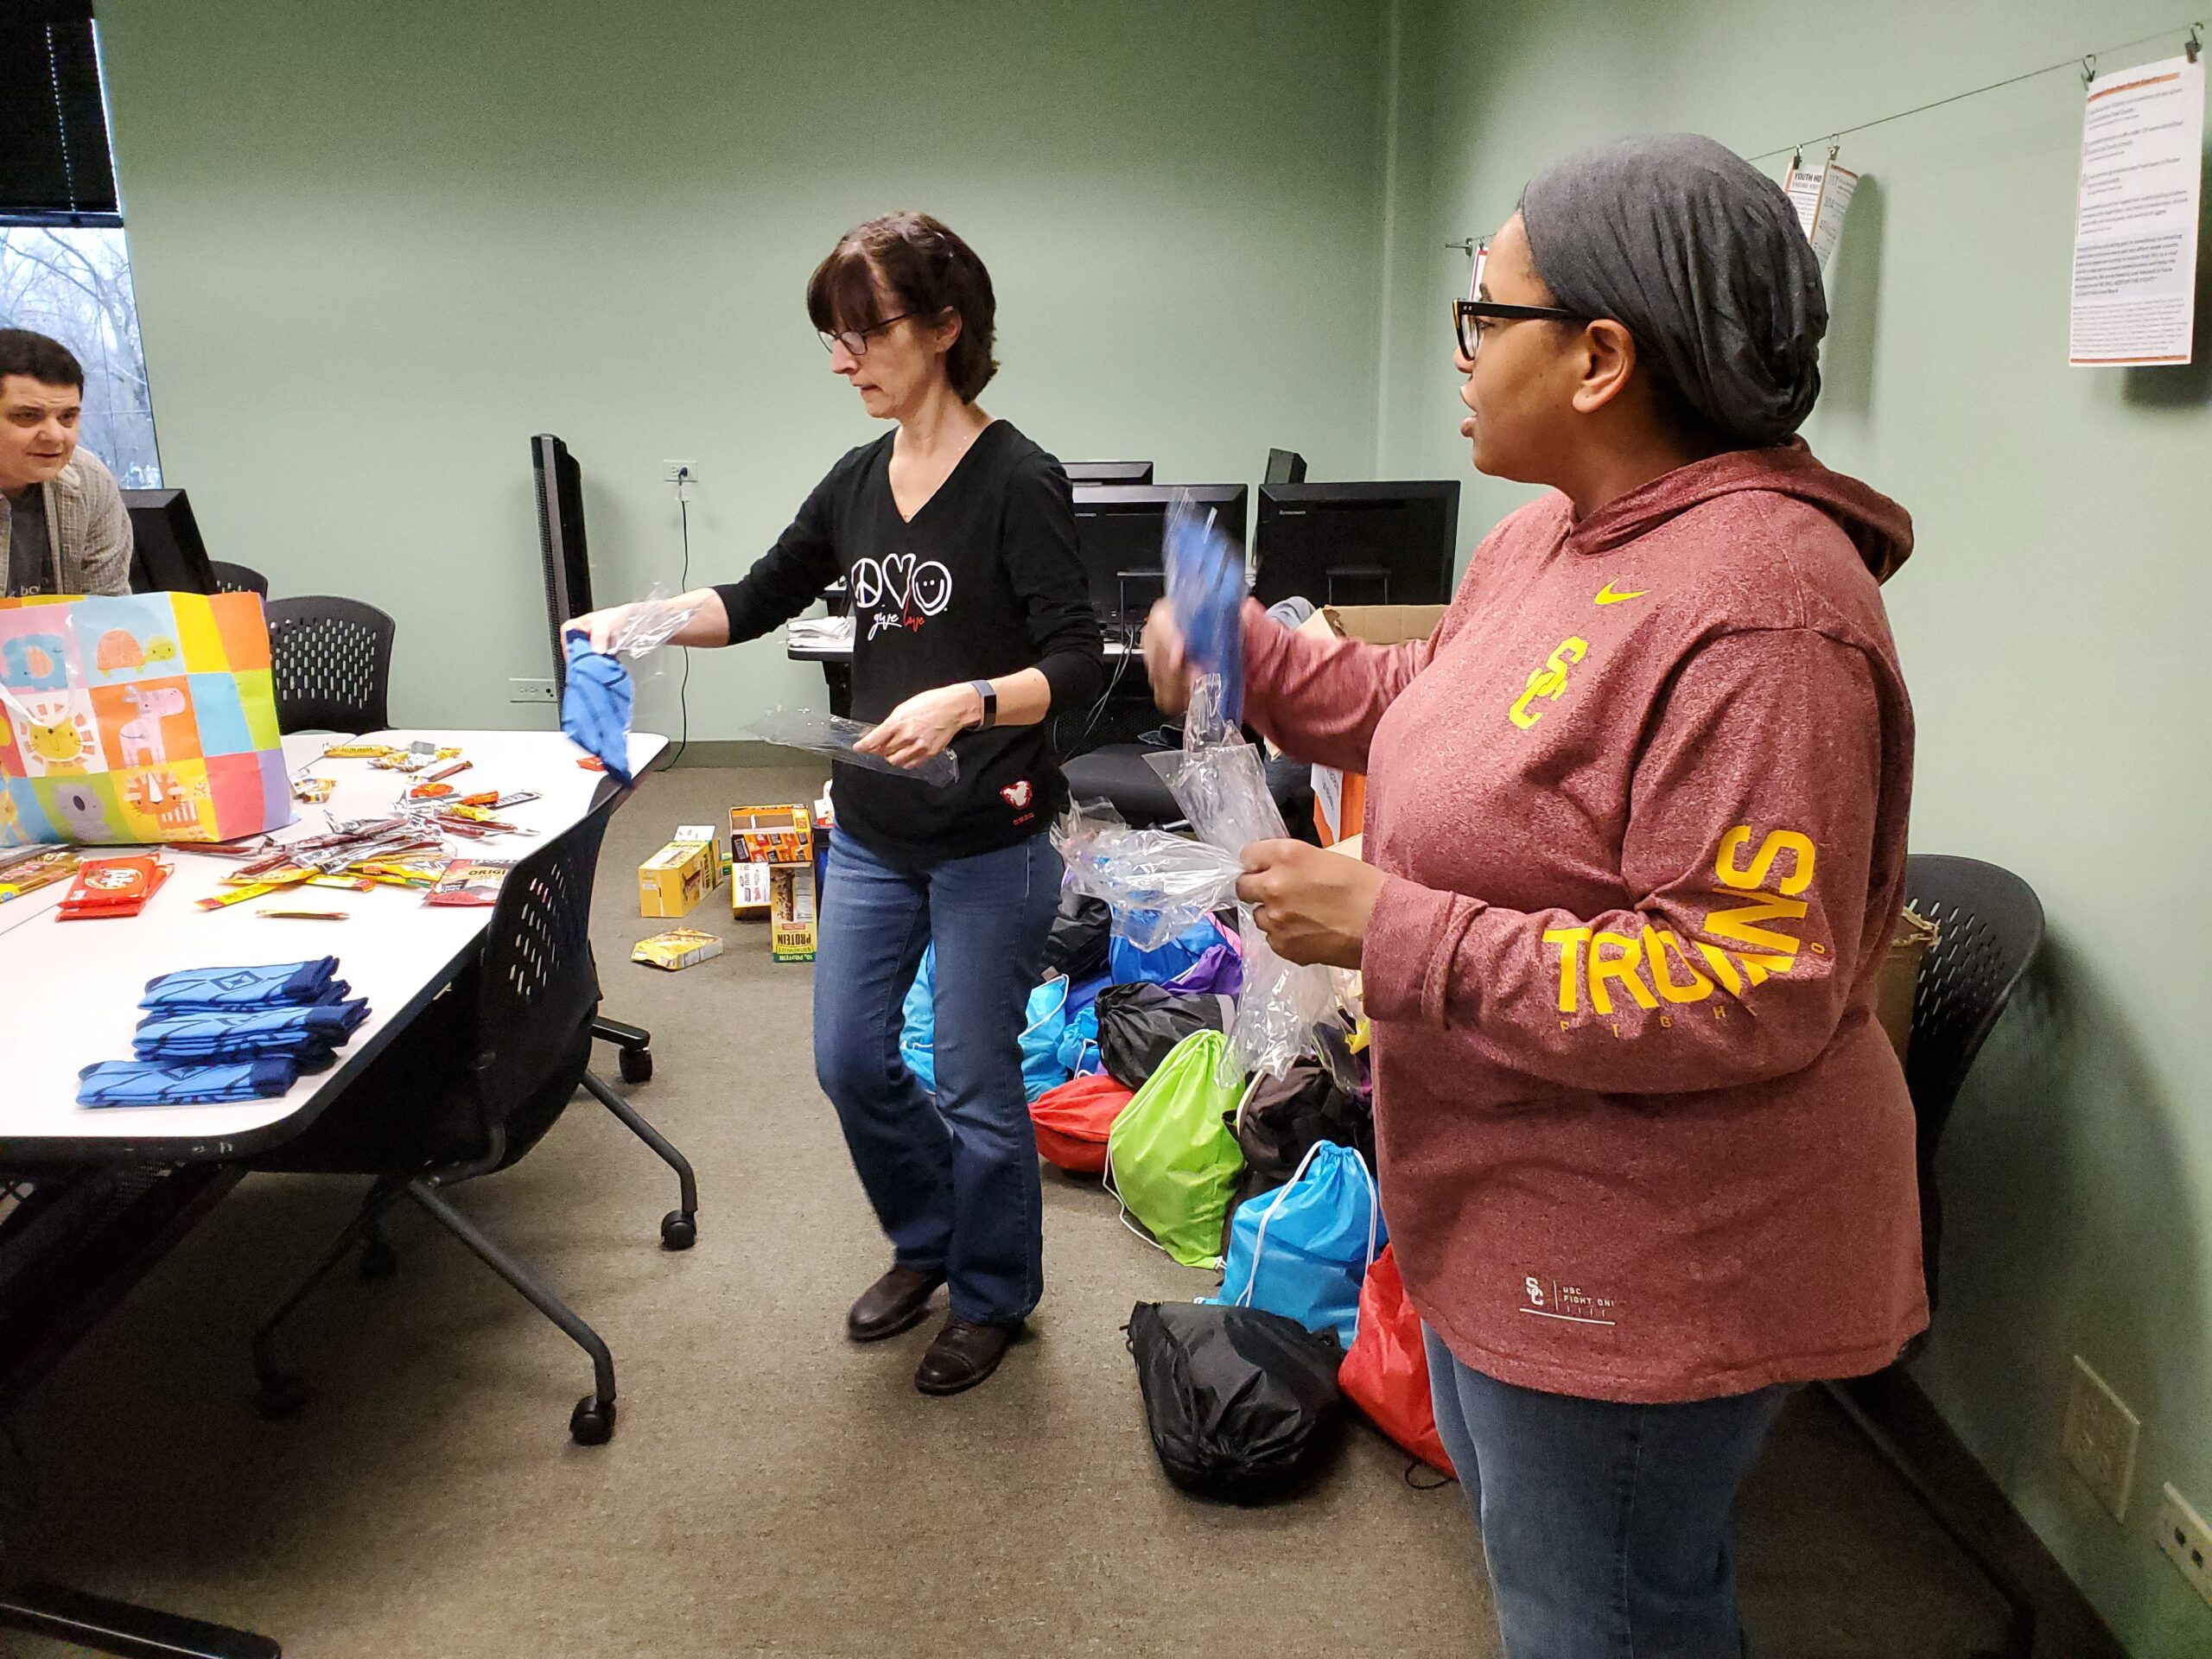 Lynn Suchwalko from Suburban Cook County's HMIS team and Kathryn Primas CoC Program Coordinator, Alliance to End Homelessness in Suburban Cook County preparing for the PIT Count by packing backpacks of supplies.